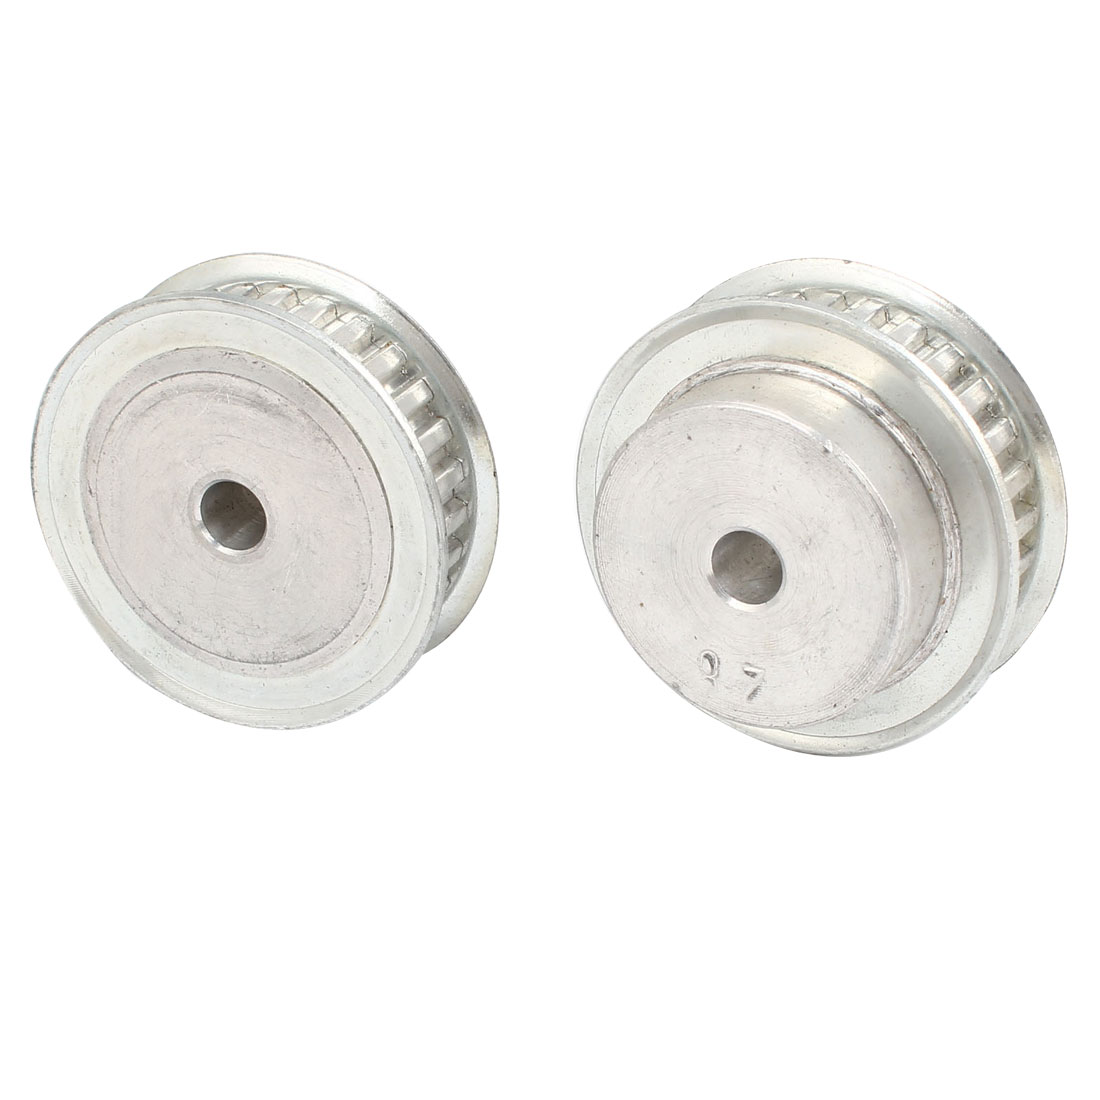 2 Pcs Stainless Steel XL Type 28T 6mm Pitch 8mm Diameter Bore Timing Belt Pulley